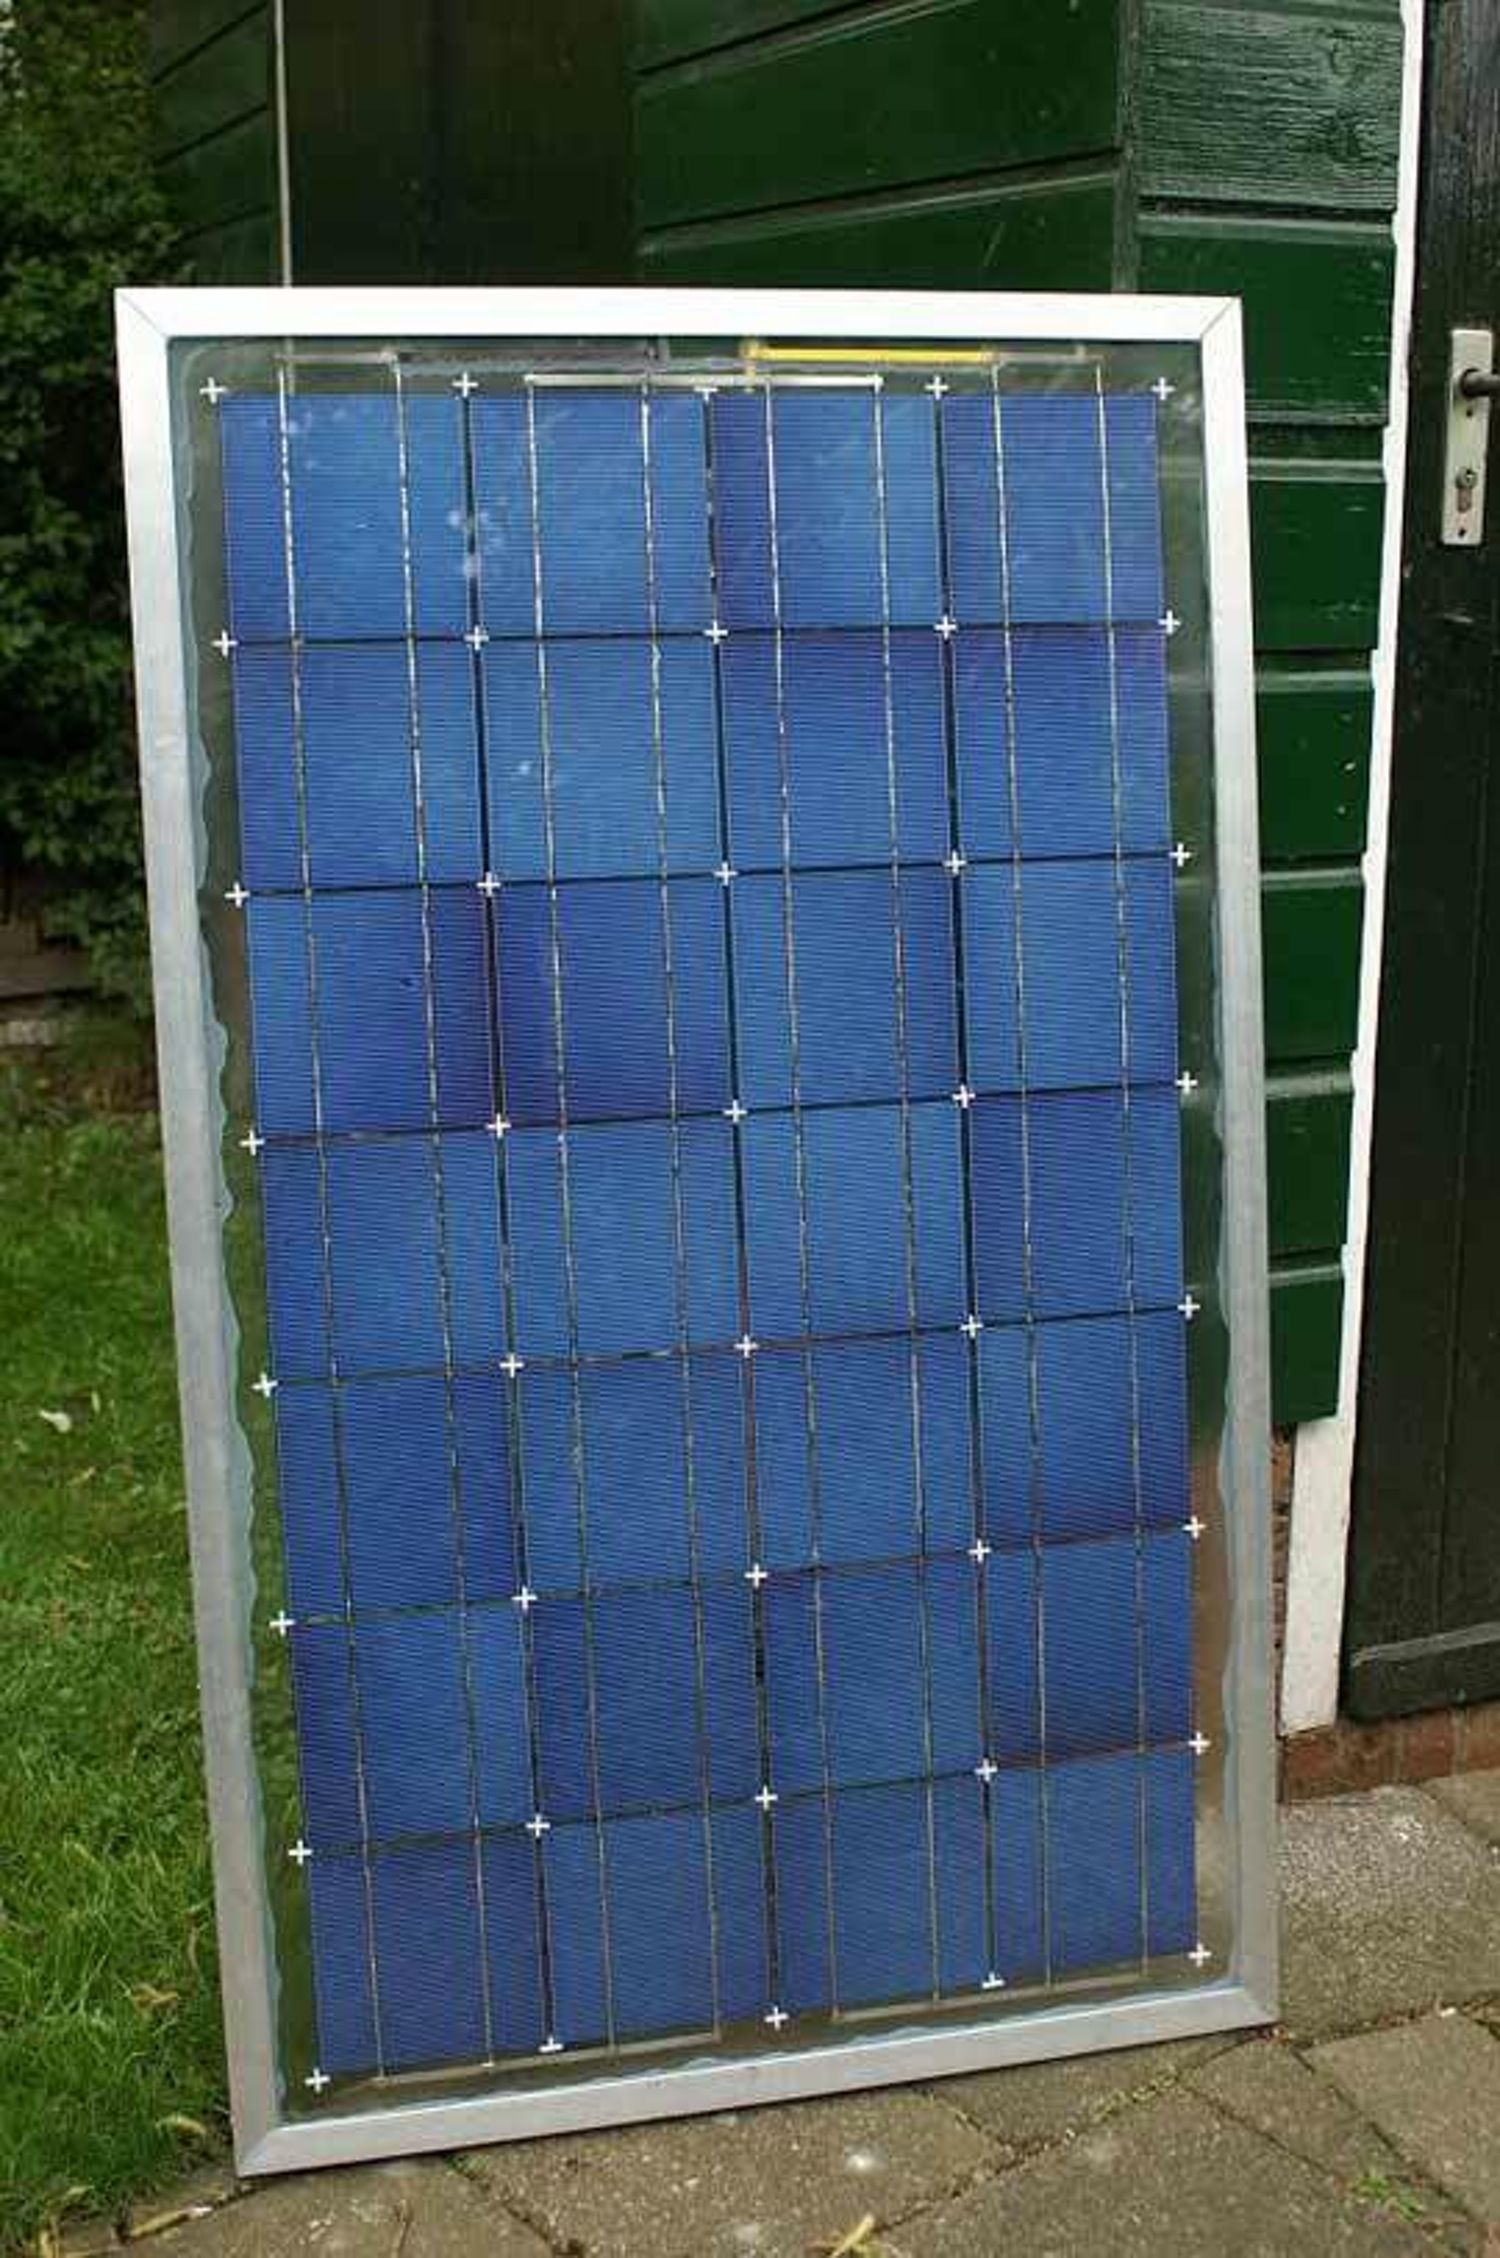 Comment Fabriquer Lampe Solaire making your own solar panels for your home | Énergie solaire